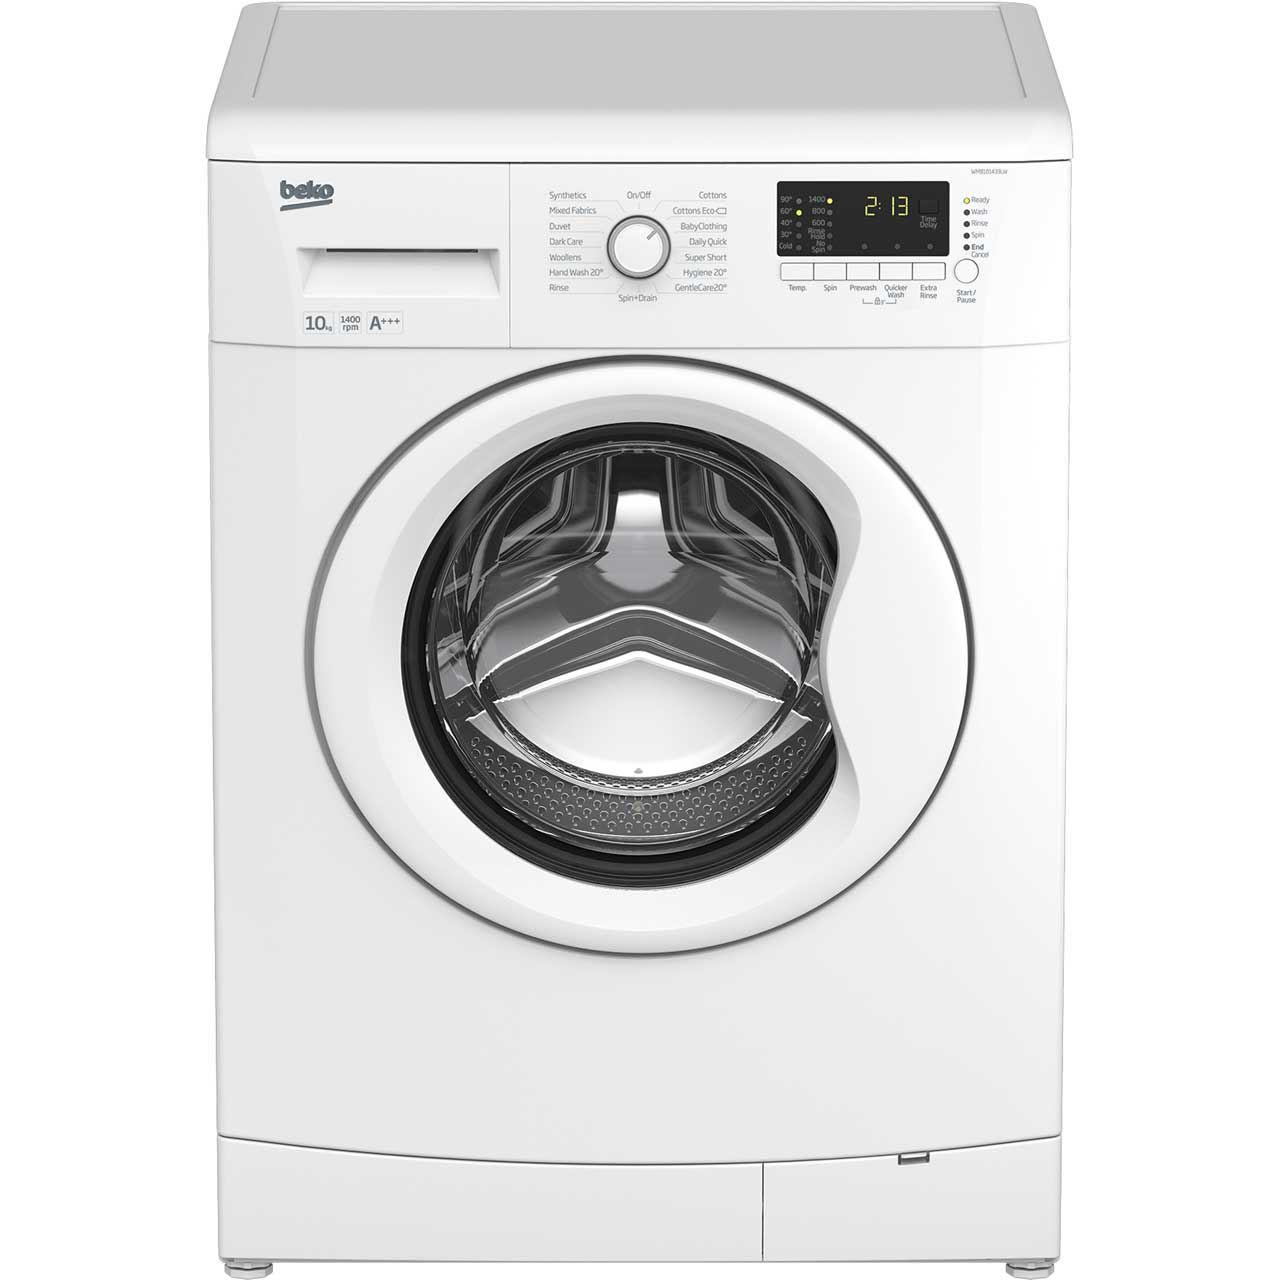 Beko WMB101433LW Free Standing Washing Machine in White